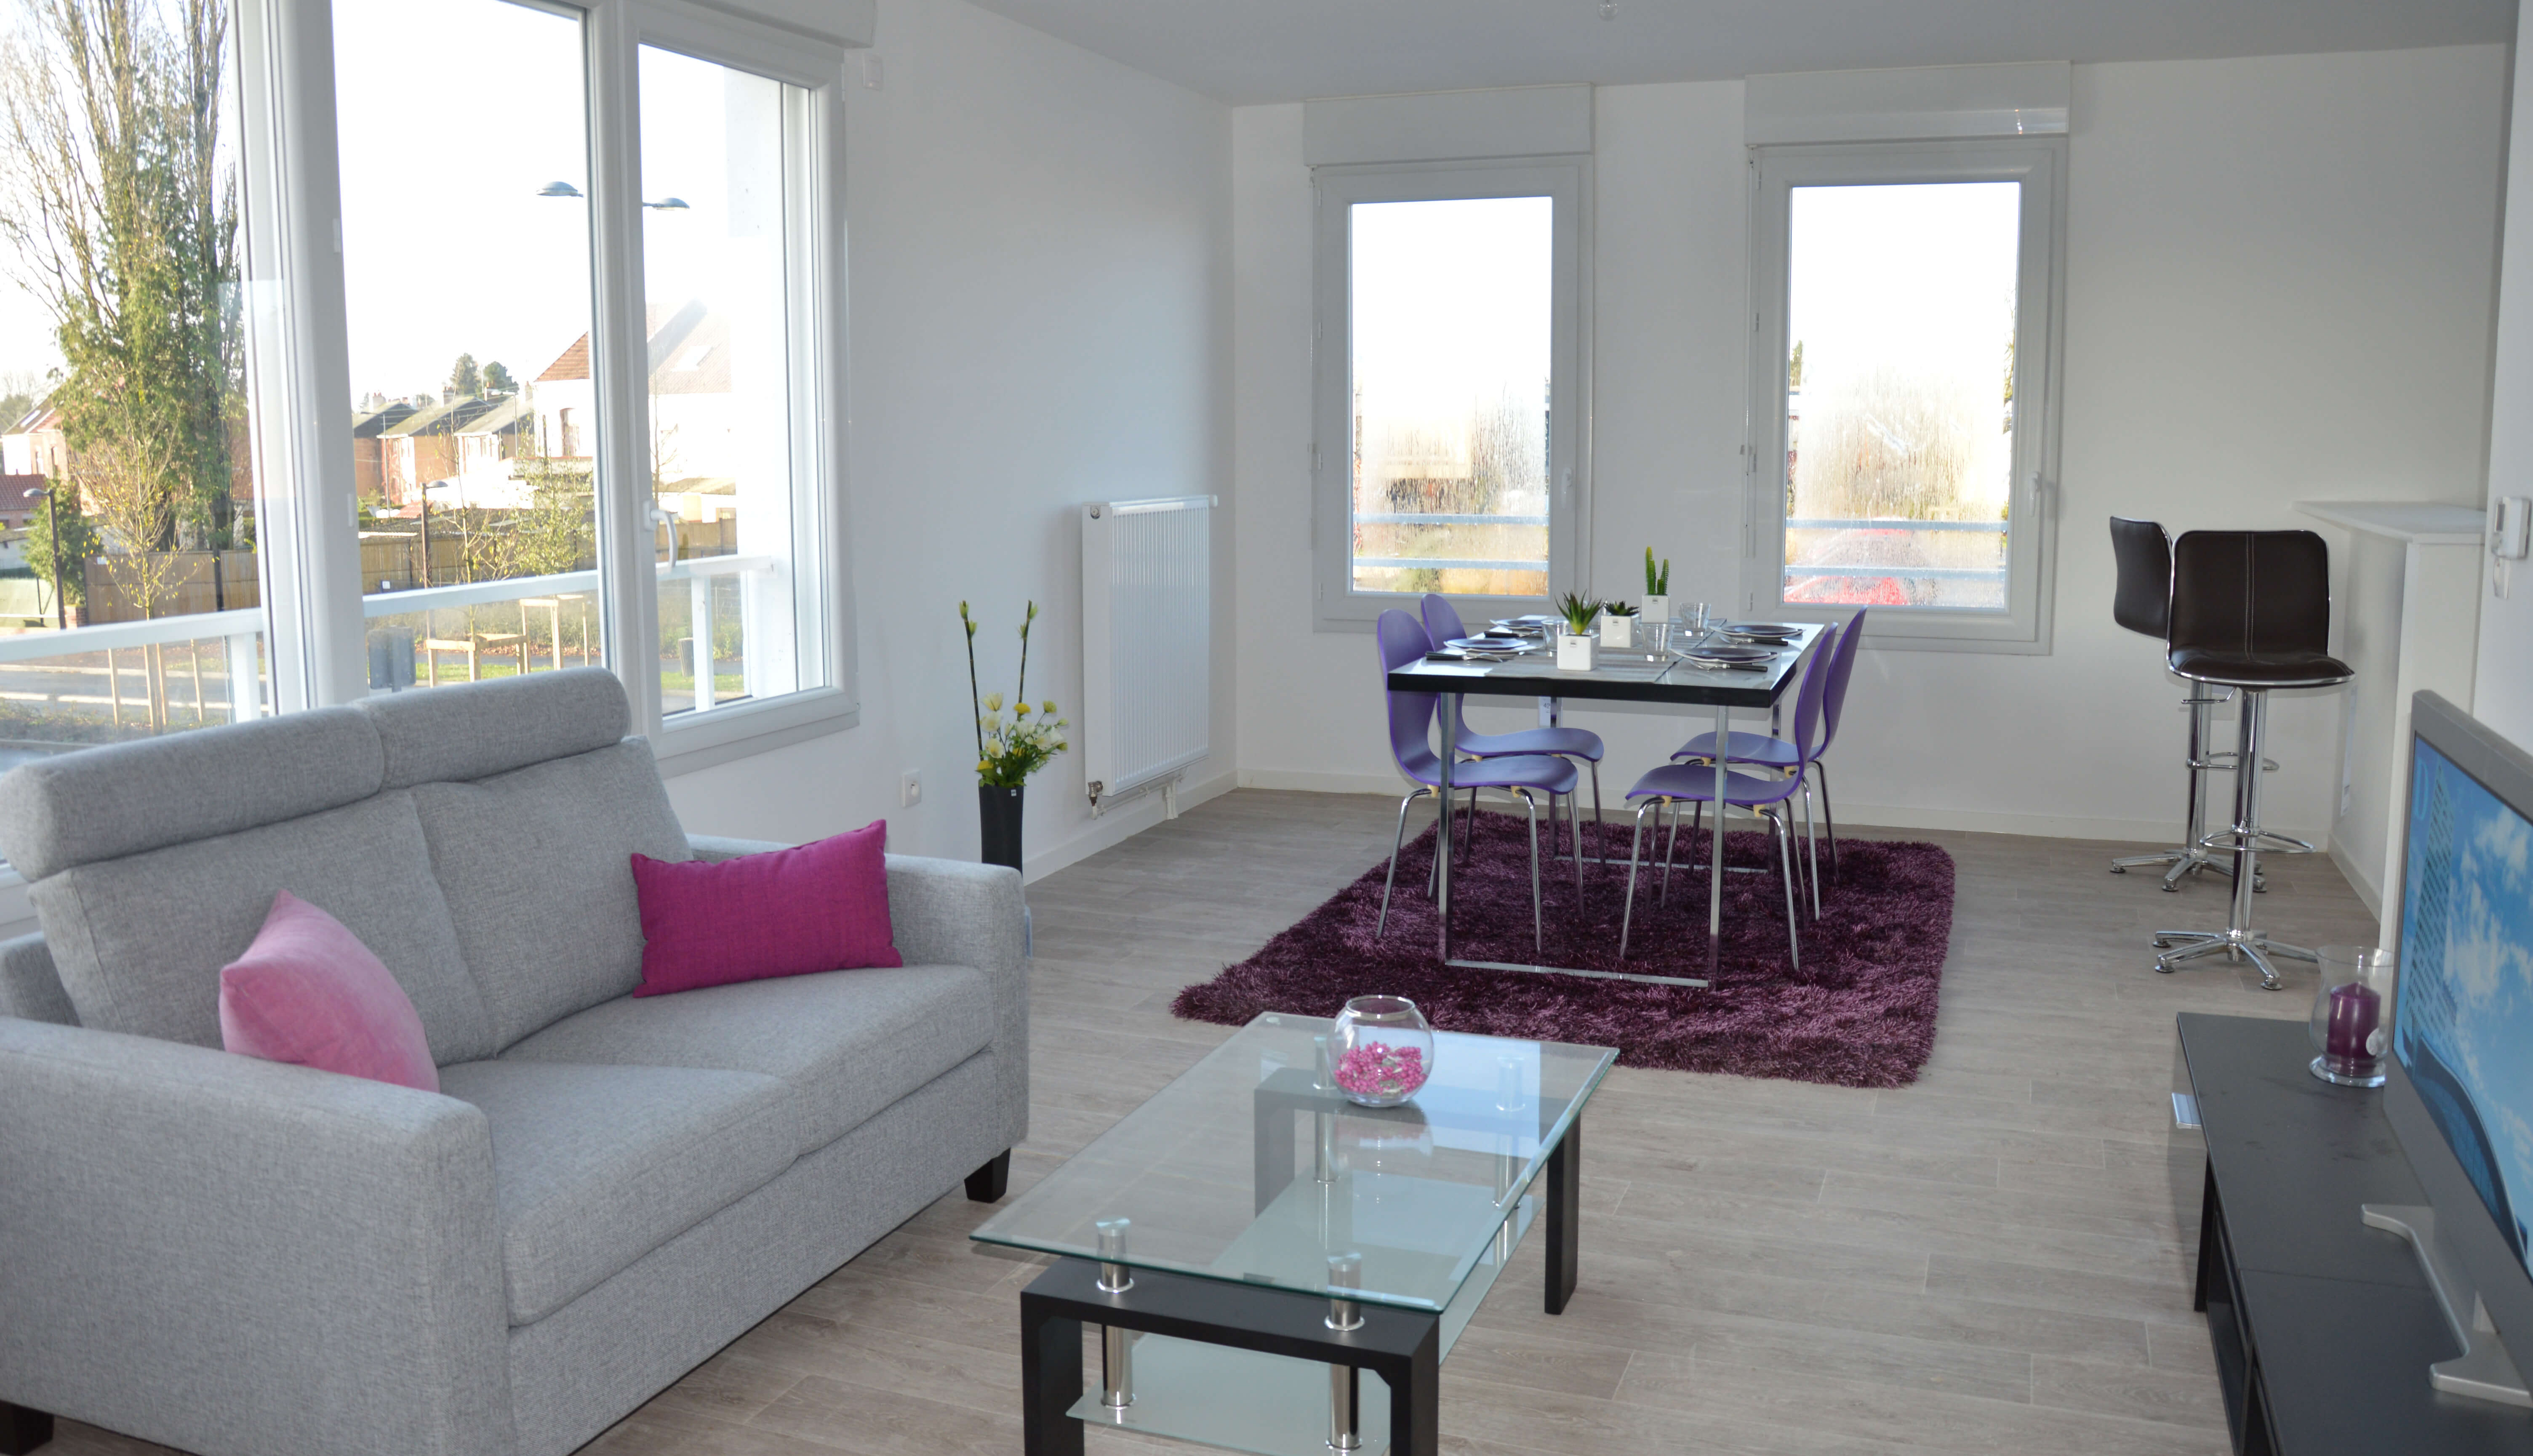 Location appartement maubeuge groupe sai for Location appartement par